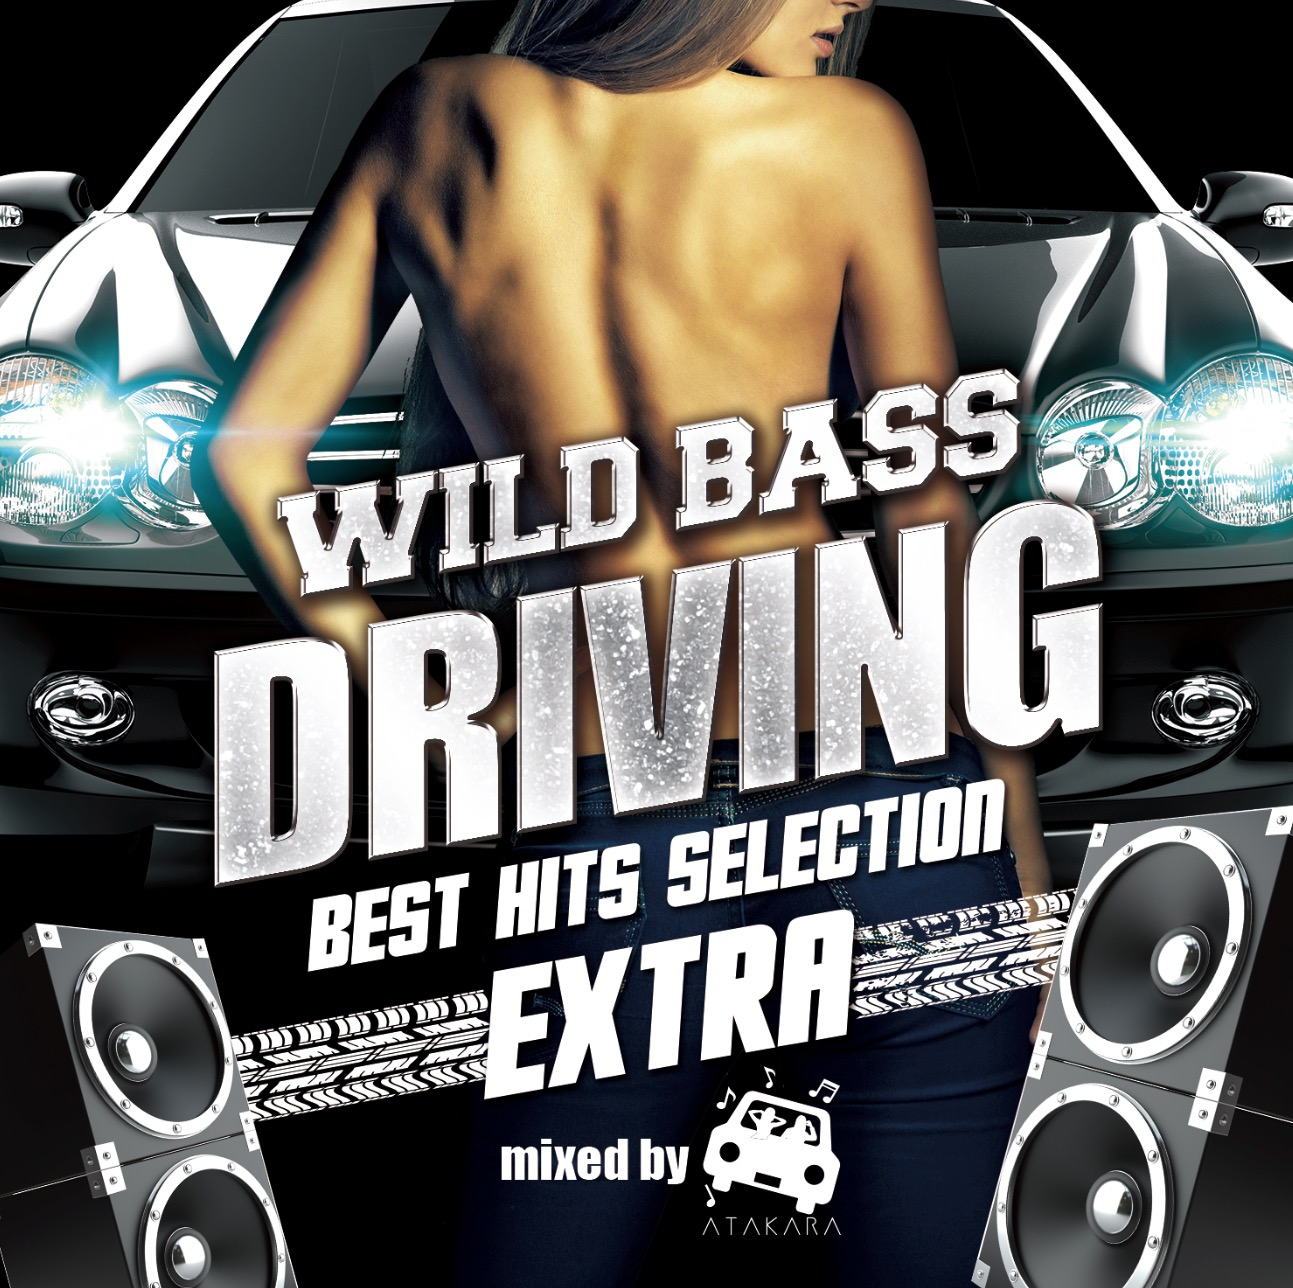 WILD BASS DRIVING -BEST HITS SELECTION EXTRA- mixed by ATAKARA